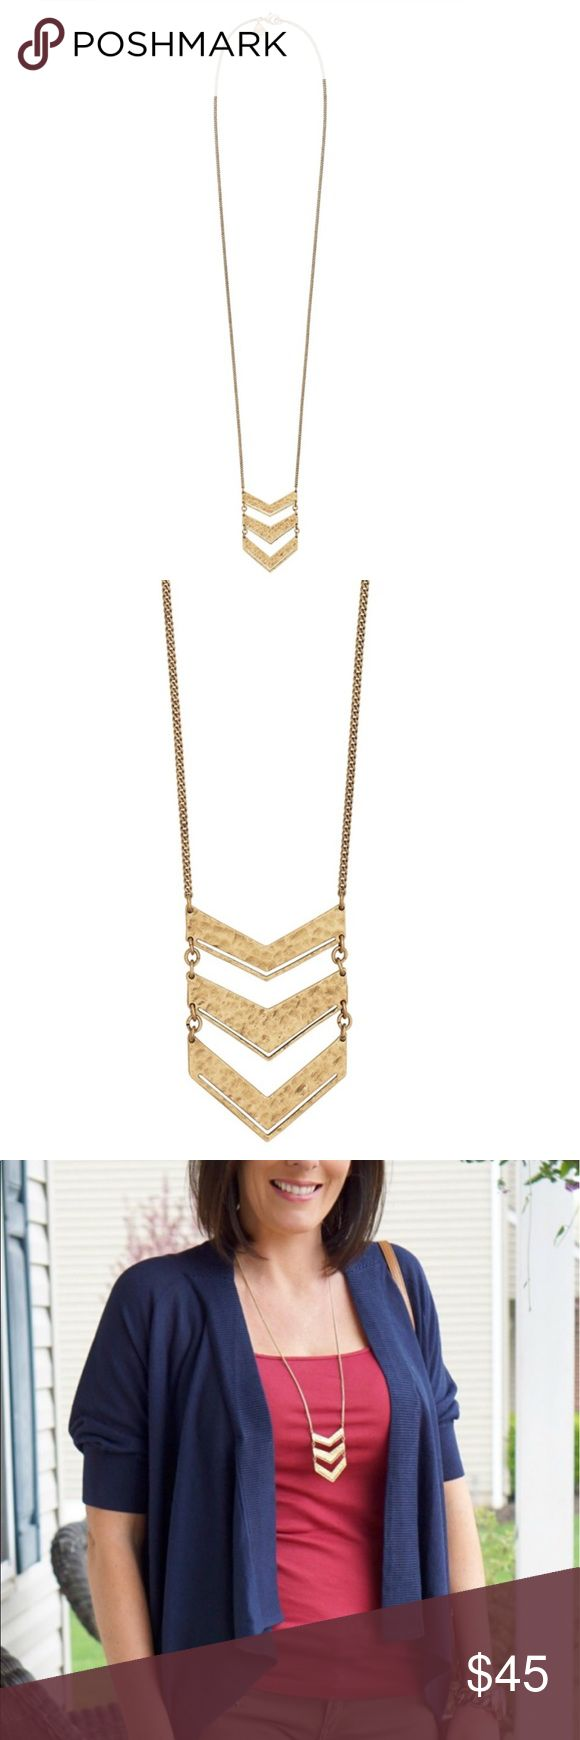 "Silpada Chevron Plunge Necklace Silpada designs hand crafted brass 30"" Chevron necklace Silpada Jewelry Necklaces"